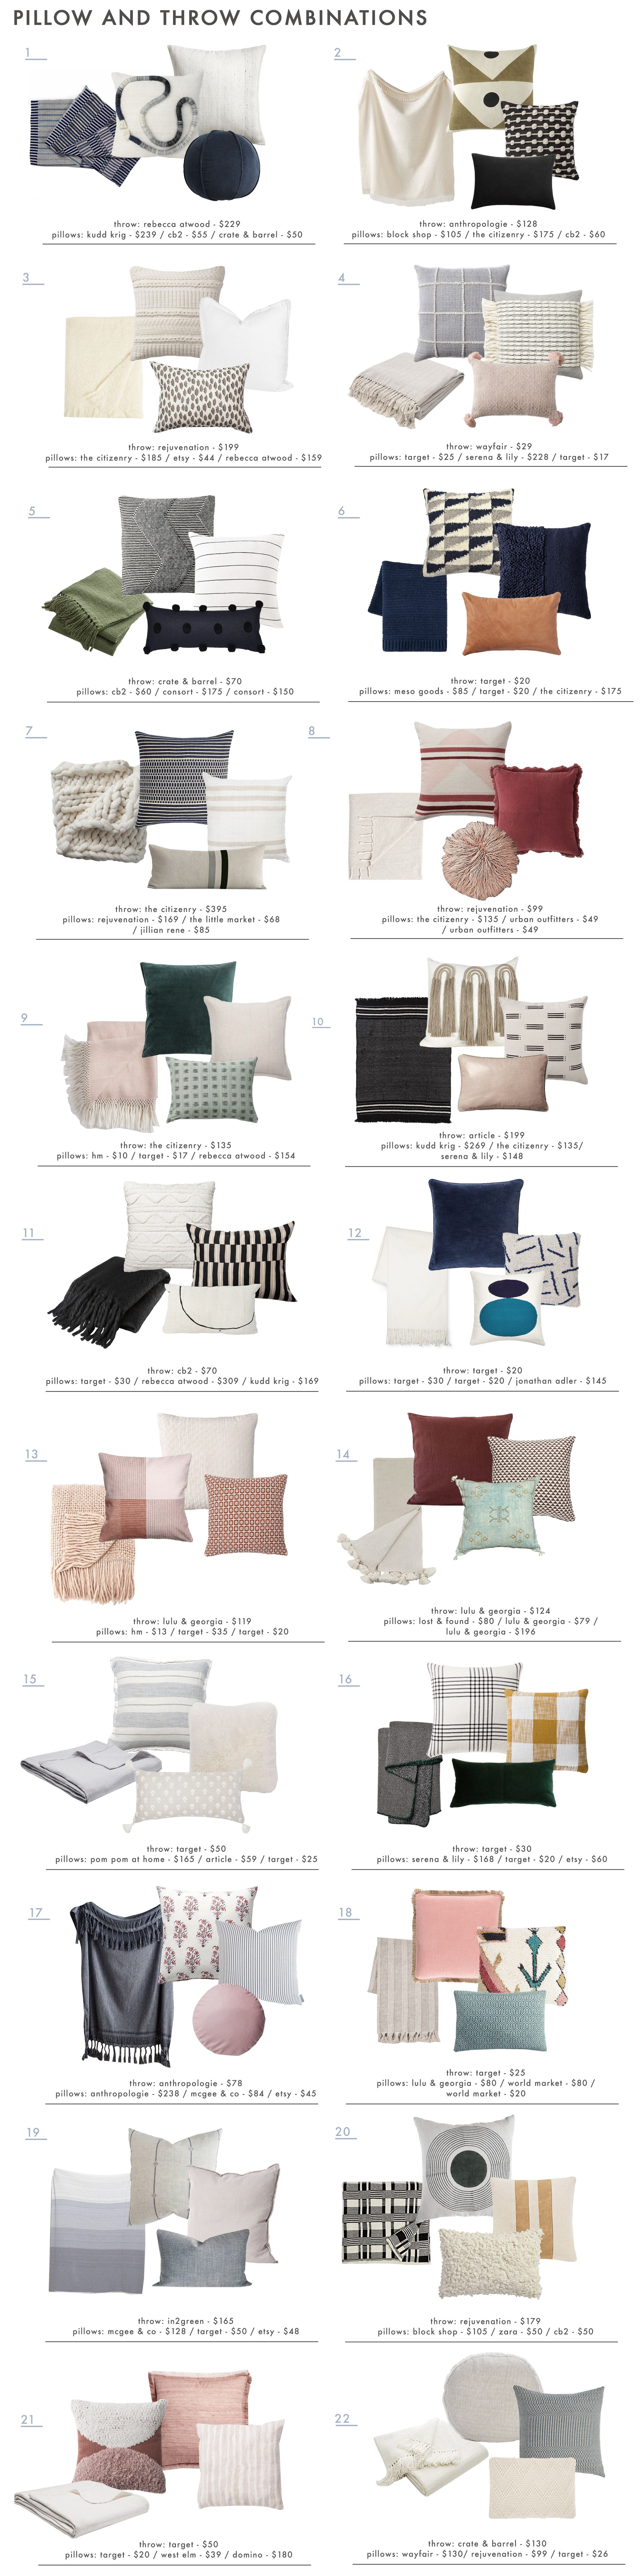 22 Pillow and Throw Combinations for Any Style   Emily Henderson